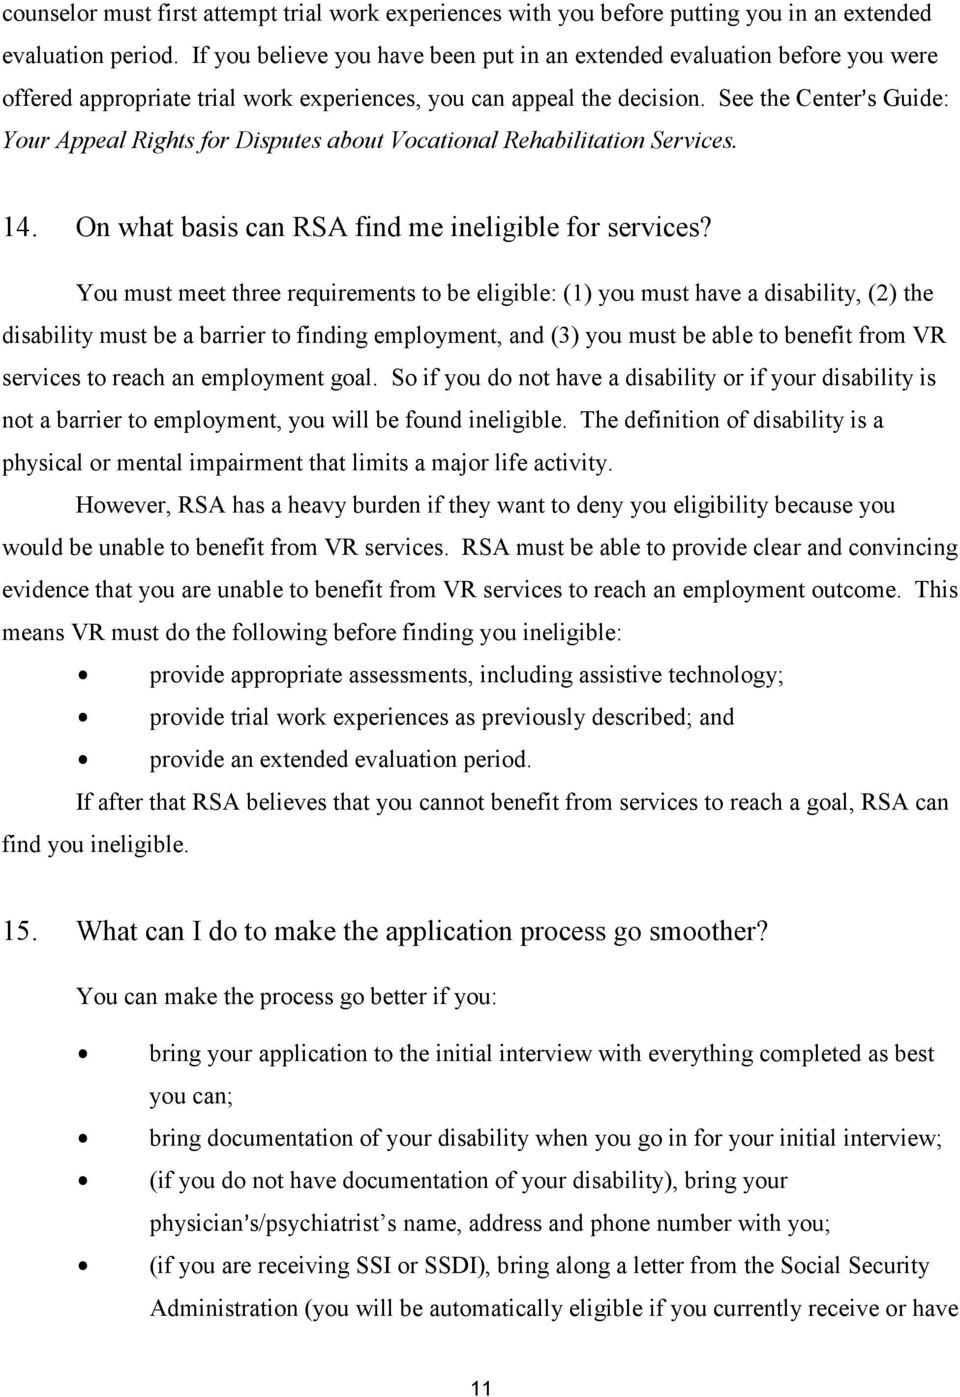 See the Center=s Guide: Your Appeal Rights for Disputes about Vocational Rehabilitation Services. 14. On what basis can RSA find me ineligible for services?